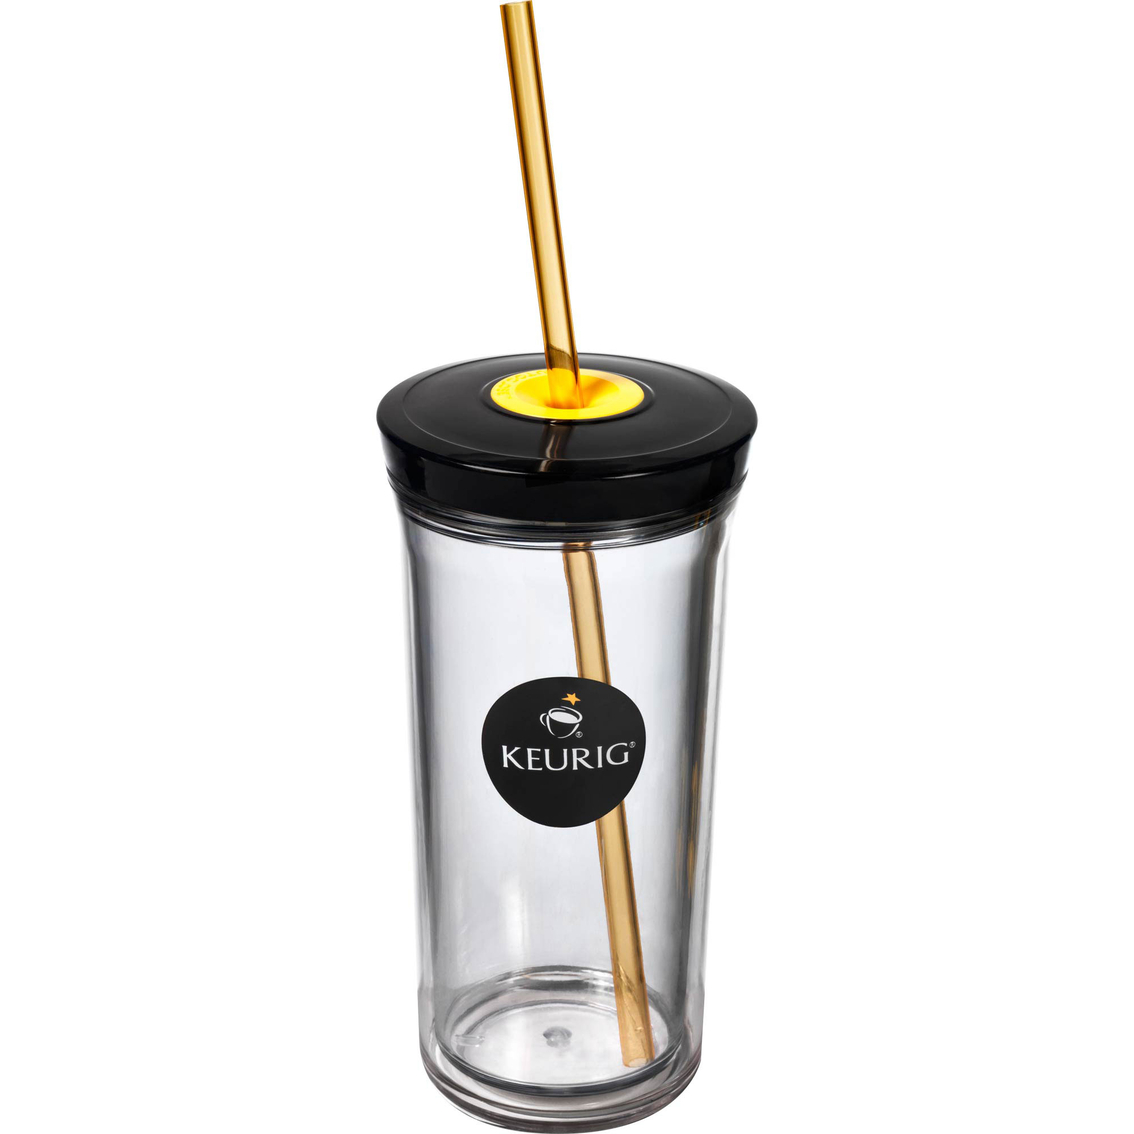 Keurig K-cup Iced Beverage Tumbler | Kitchen & Dining ...